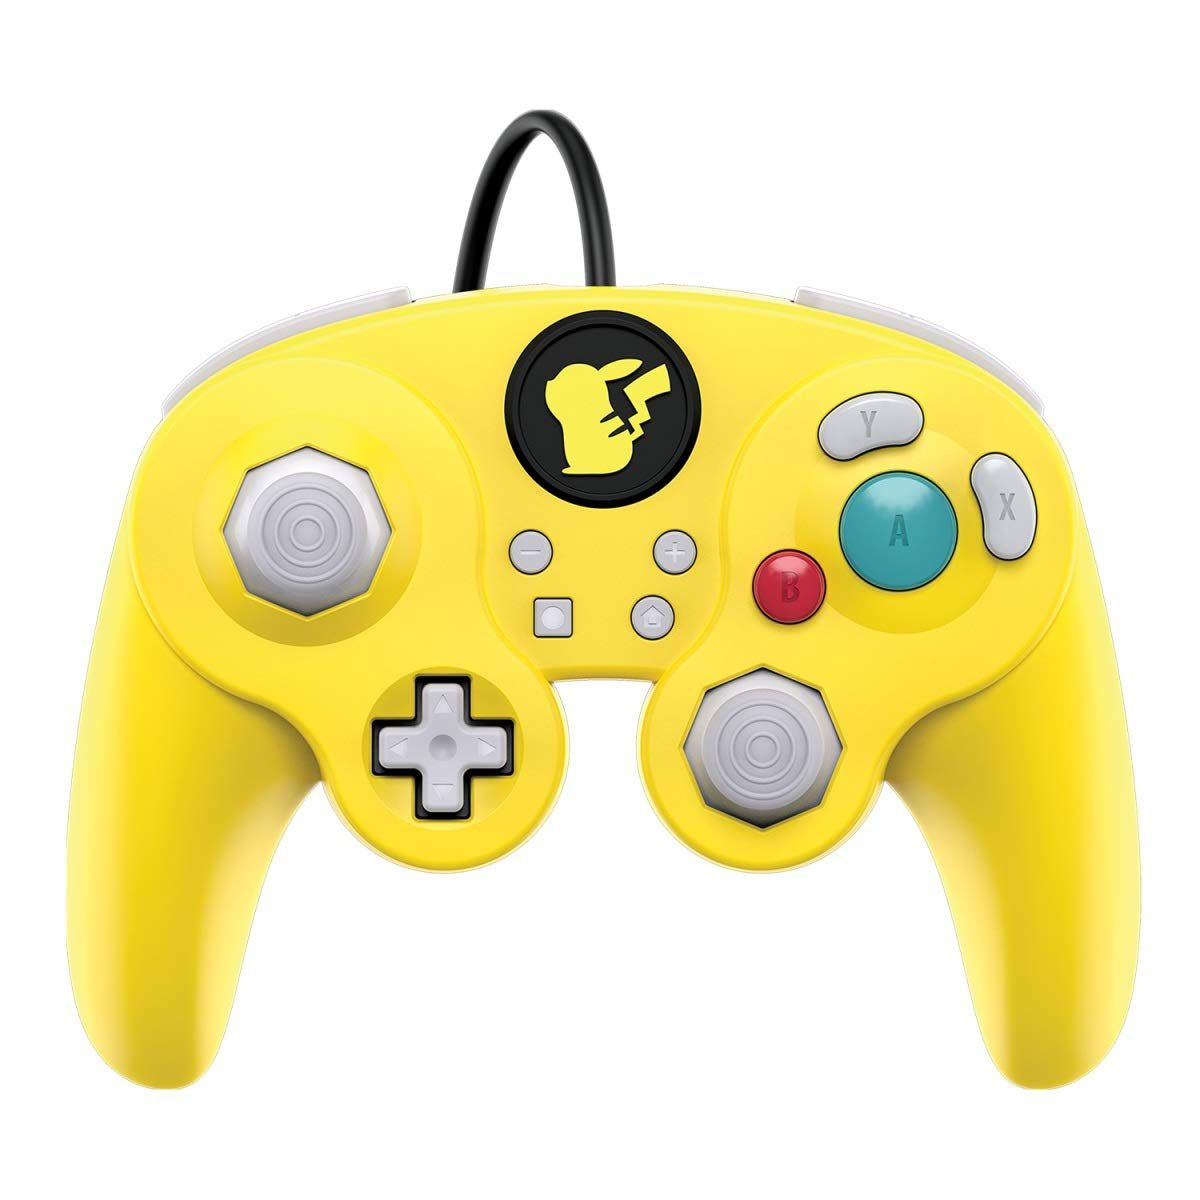 Controle Super Smash Bros Wired Fight Pad Pro Pikachu GameCube (Envio Internacional) - Nintendo Switch